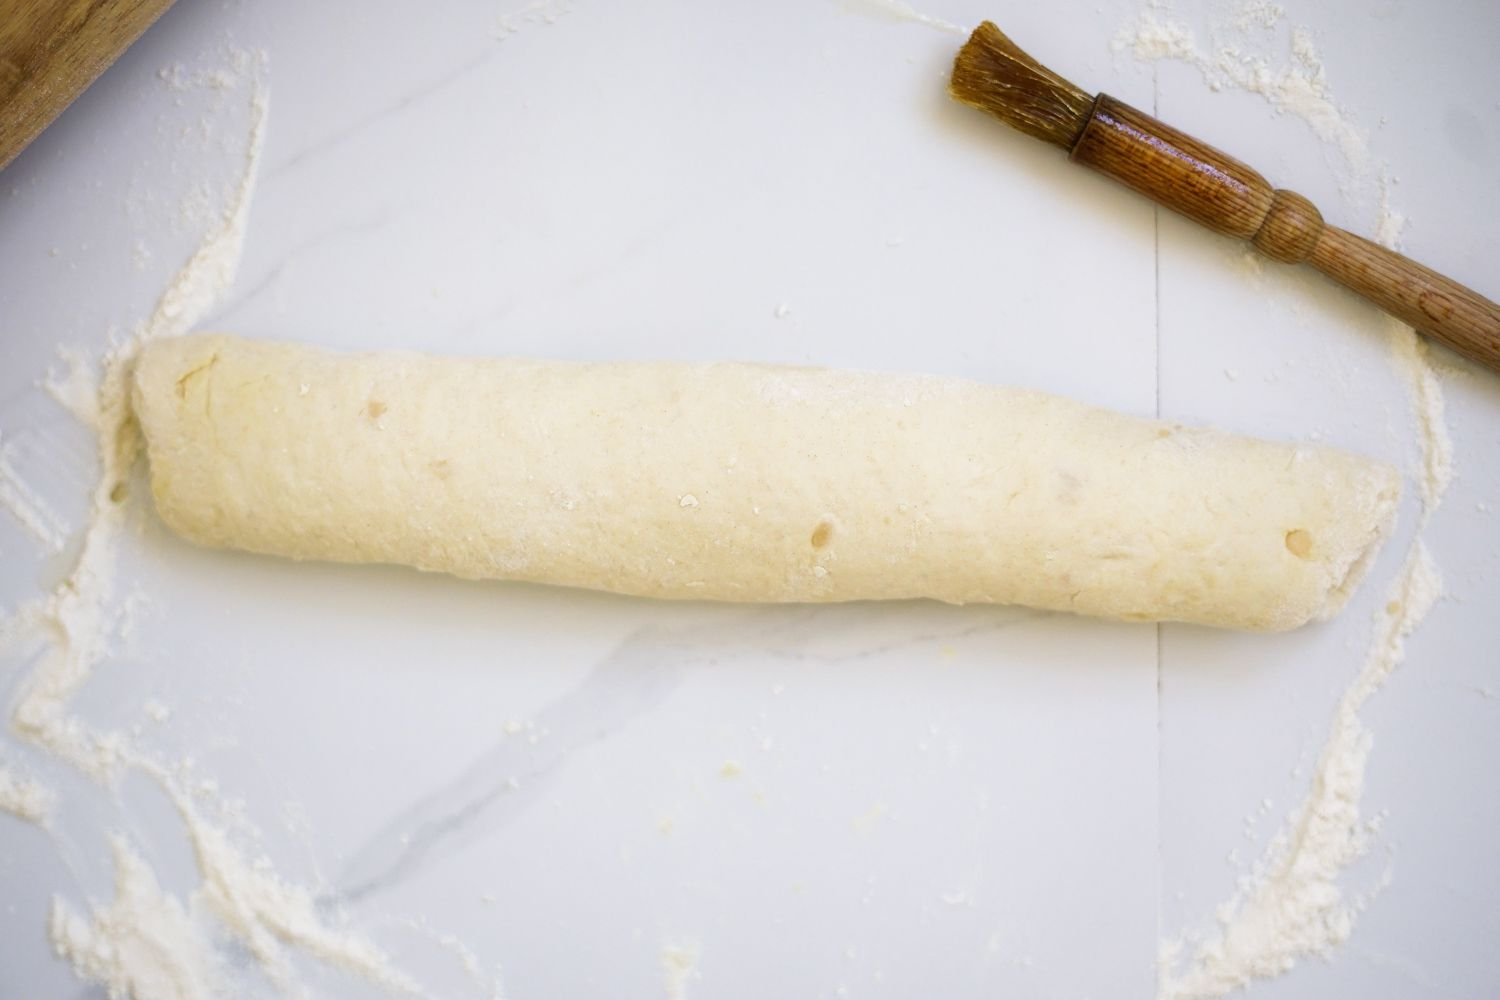 Roti dough rolled out on a marble slab sprinkled with flour